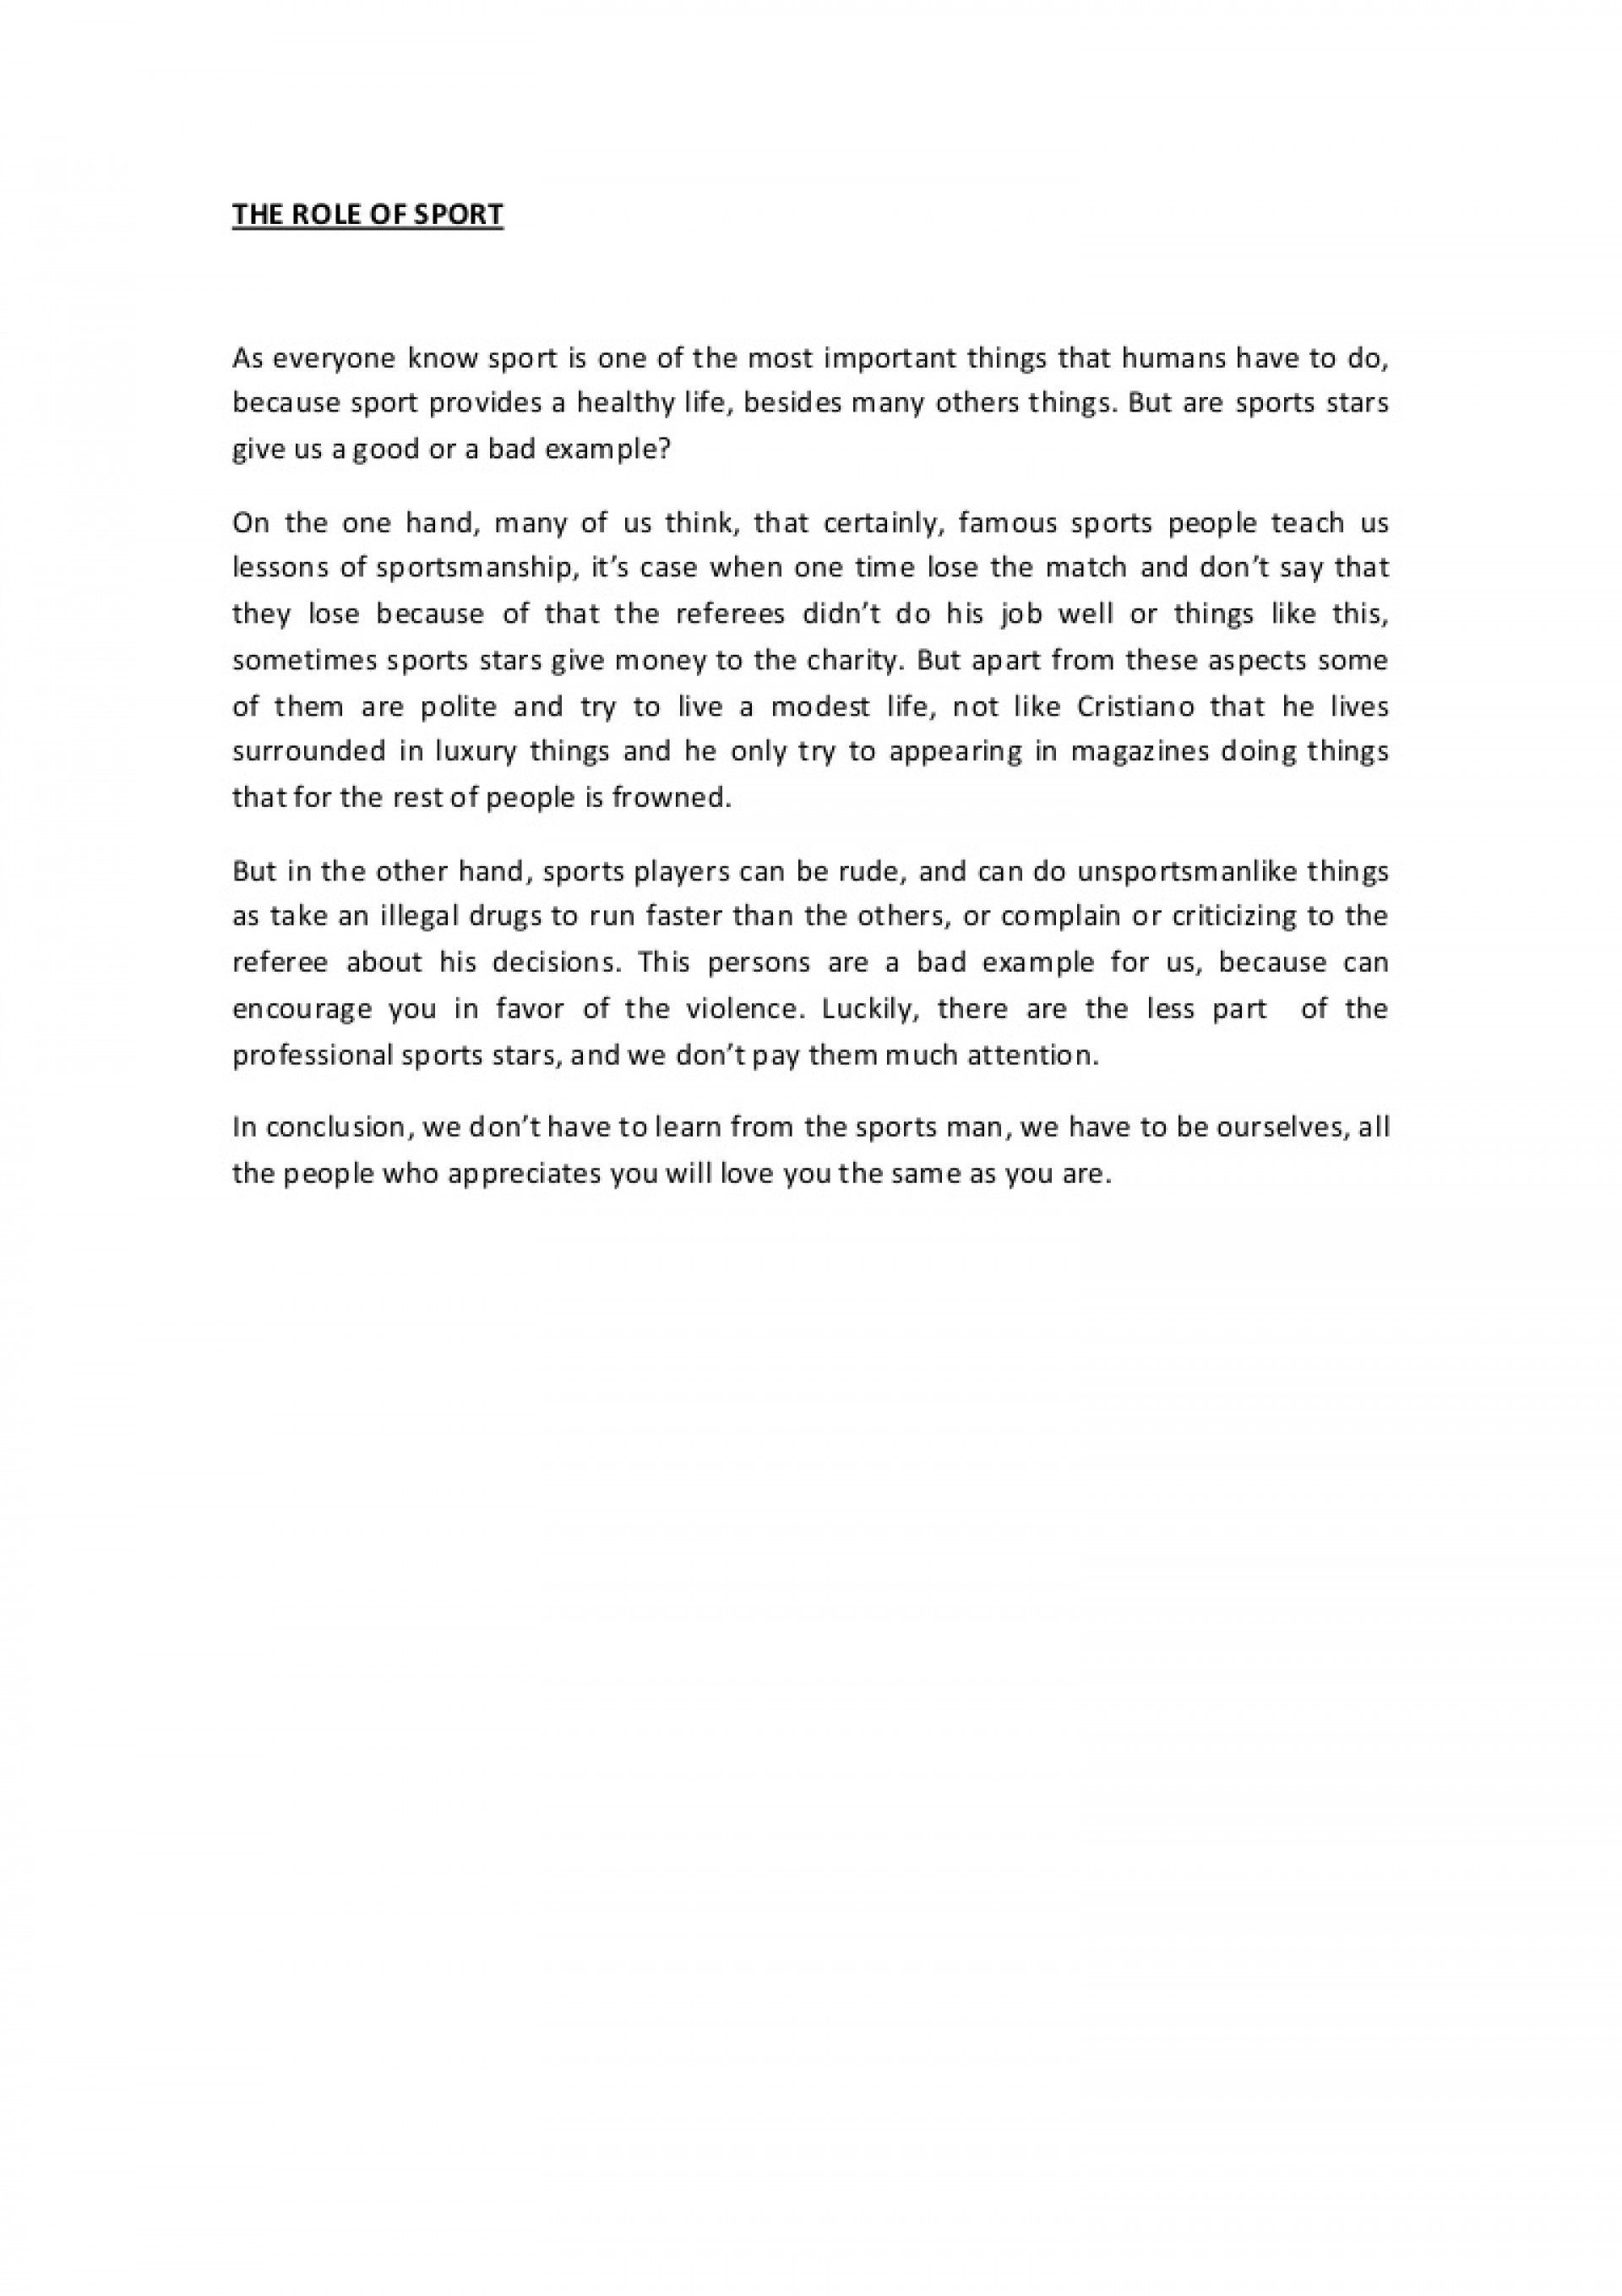 008 Discussionessayaboutsport Phpapp02 Thumbnail Essay Example Why Is It Important To Vote Top Contest 1920